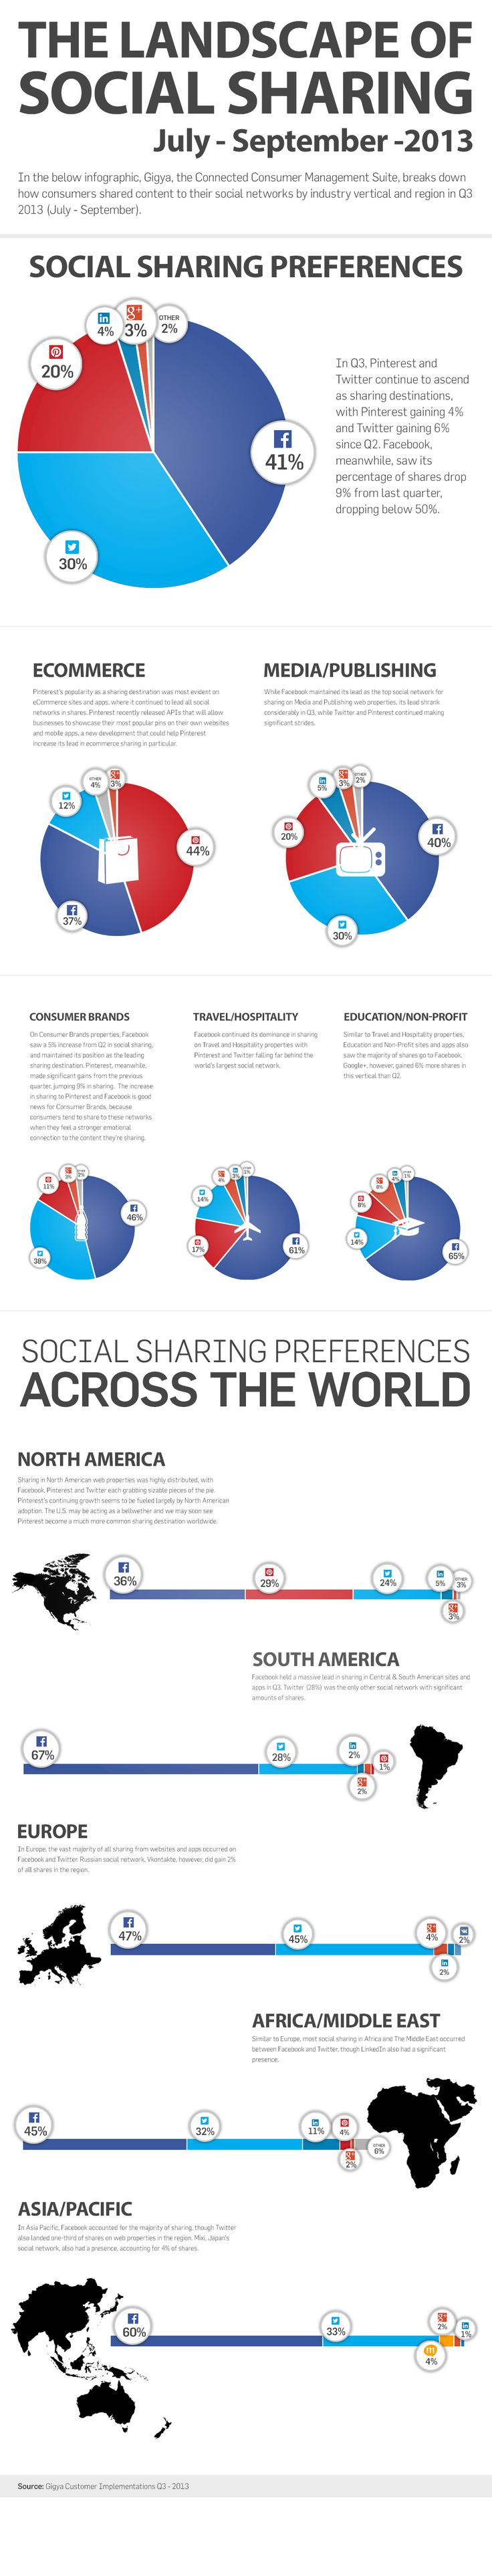 Trends in Social Sharing: The Rise of Pinterest image Gigya Sharing Infographic Q3 2013